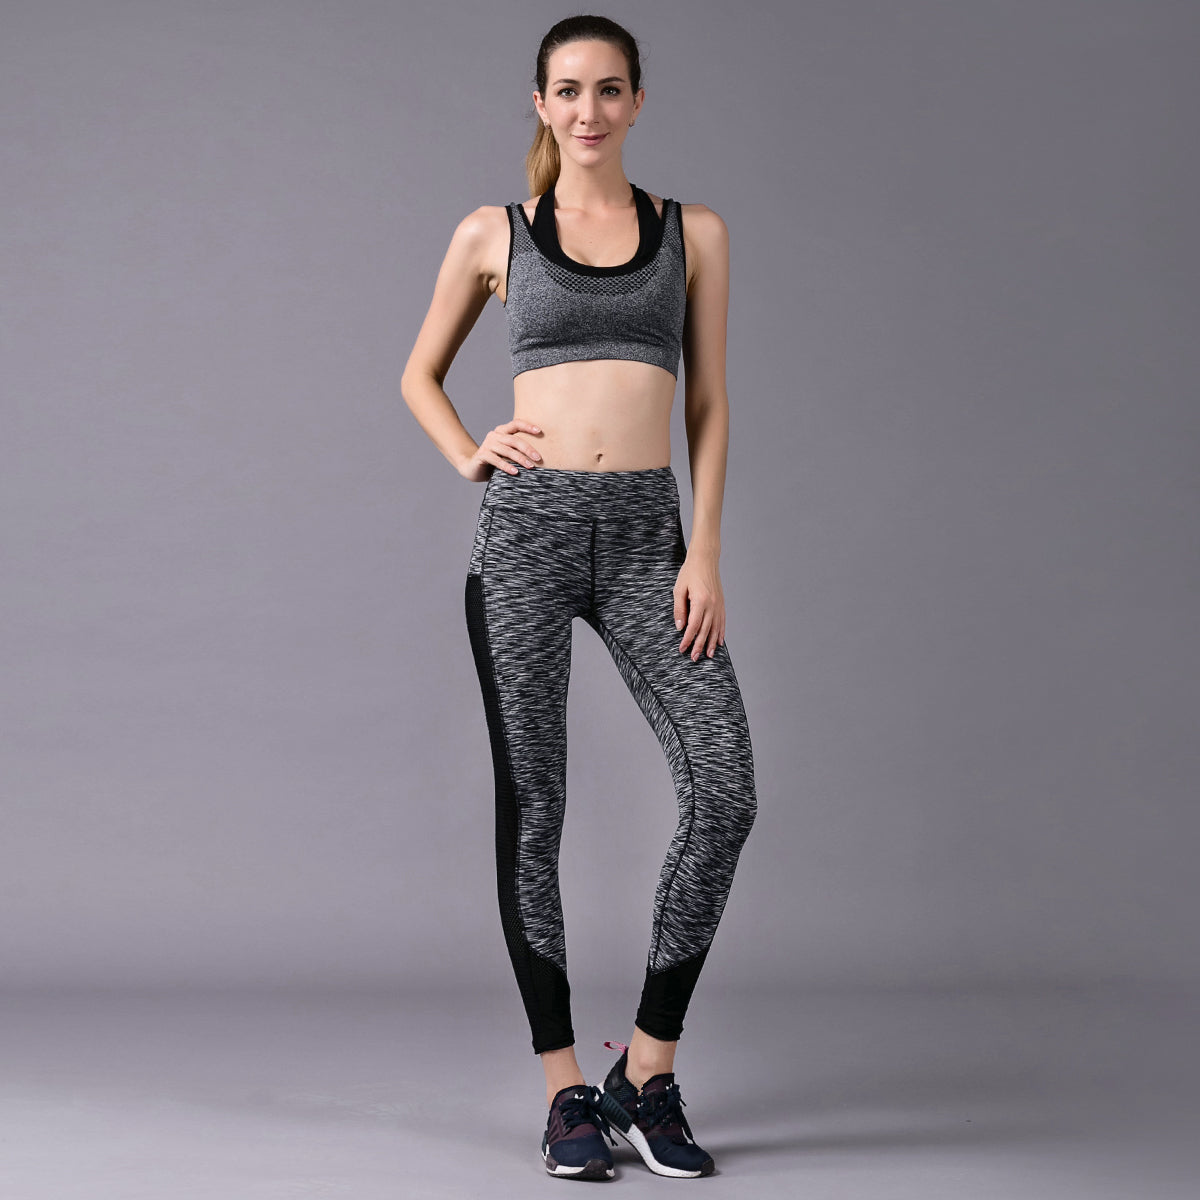 Women's Two Tone Noise/Black Yoga Pants